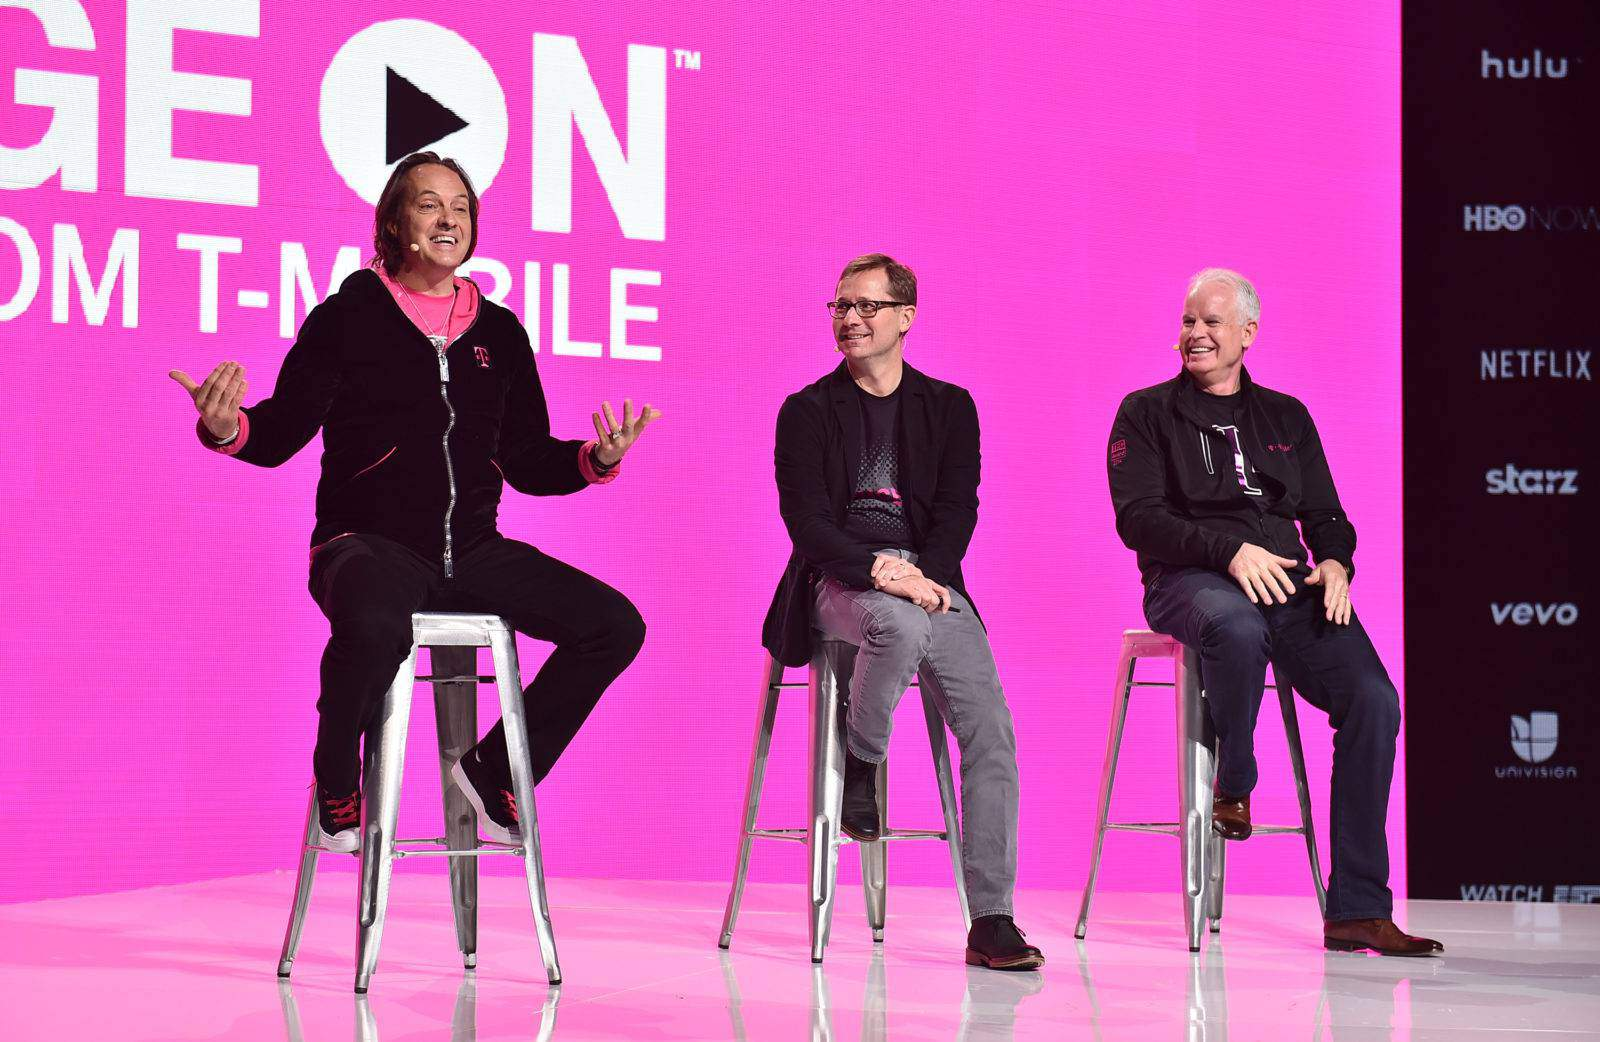 IMAGE DISTRIBUTED FOR T-MOBILE - T-Mobile CEO John Legere, COO Mike Sievert and CTO Neville Ray answer questions during the Un-carrier X at the Shrine Auditorium on Tuesday, Nov. 10, 2015, in Los Angeles. (Photo by Jordan Strauss/AP Images for T-Mobile)